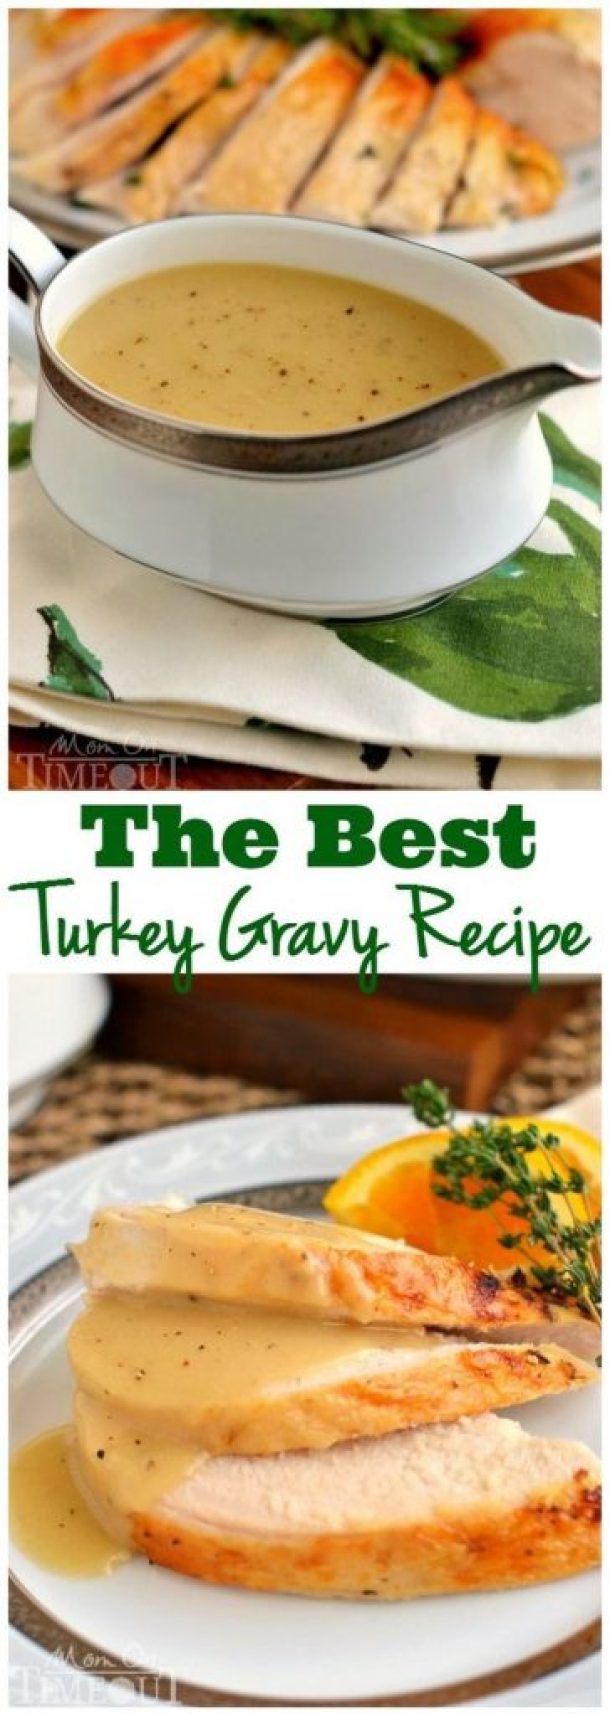 The Best Turkey Gravy Recipe | Mom On Timeout